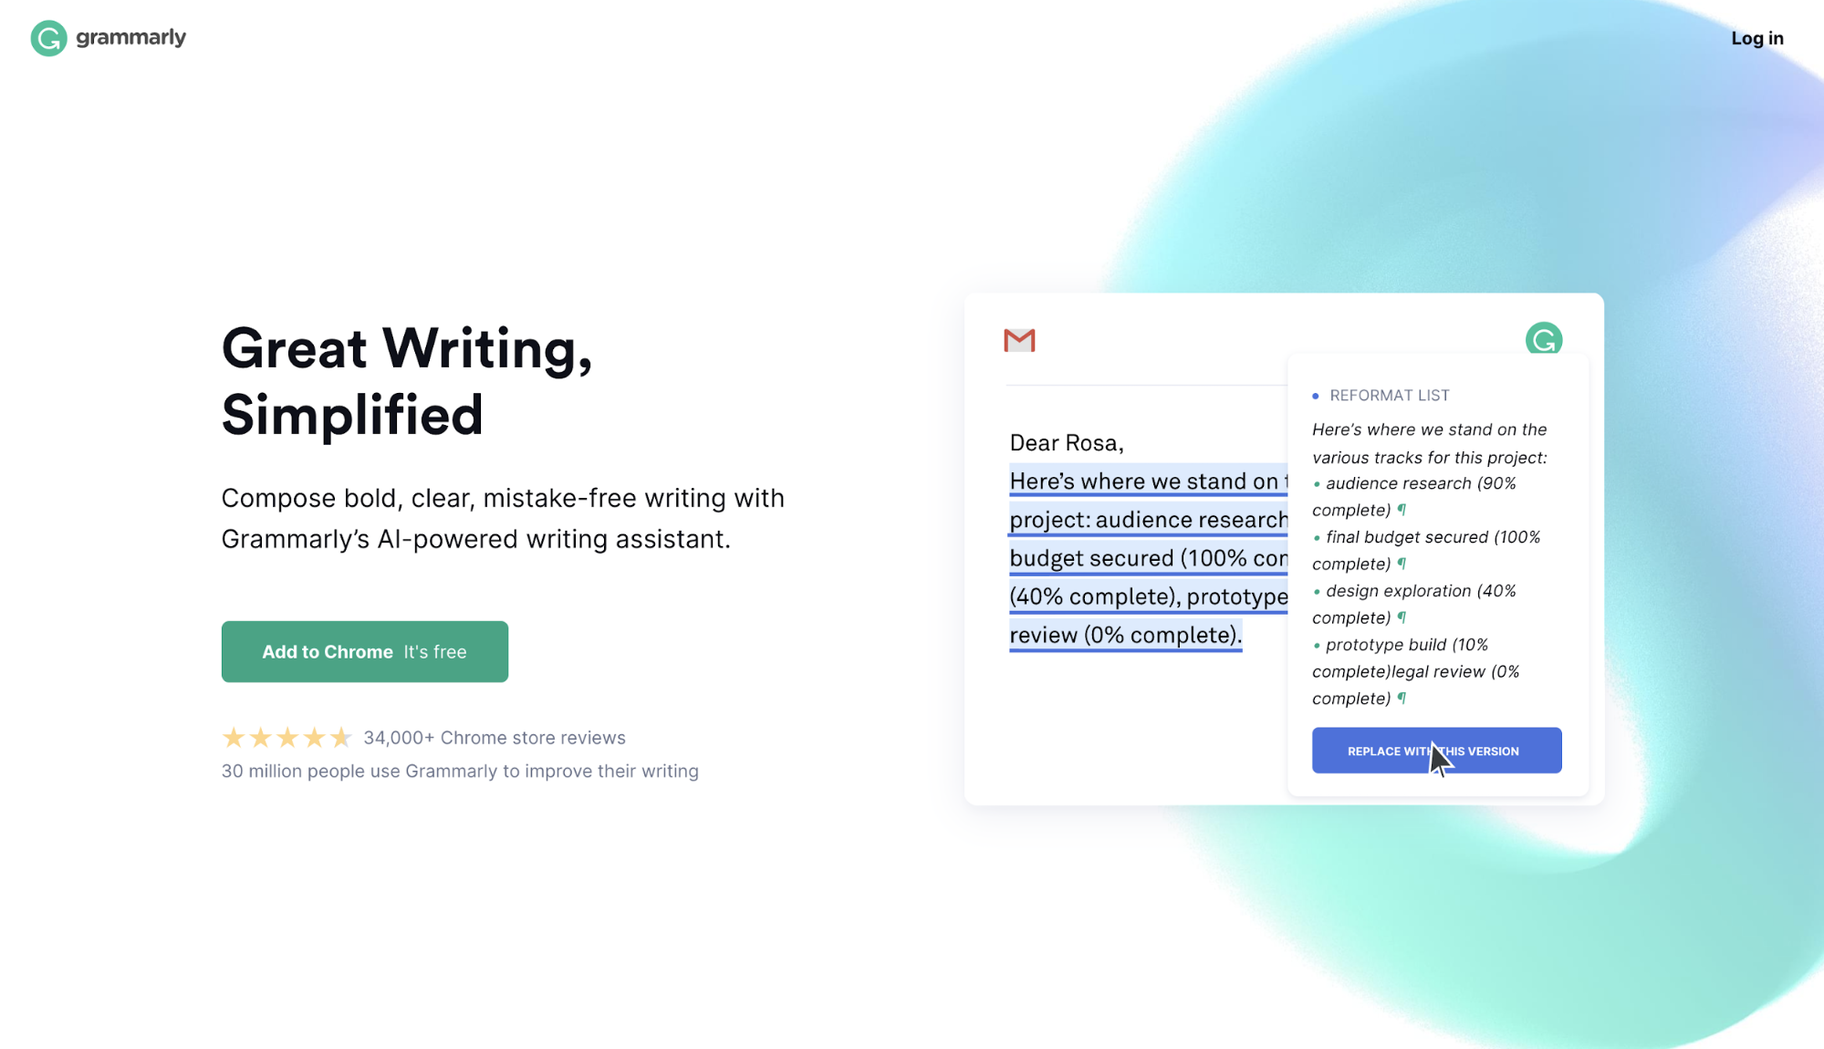 Best Software for Small Business Writing: Grammarly